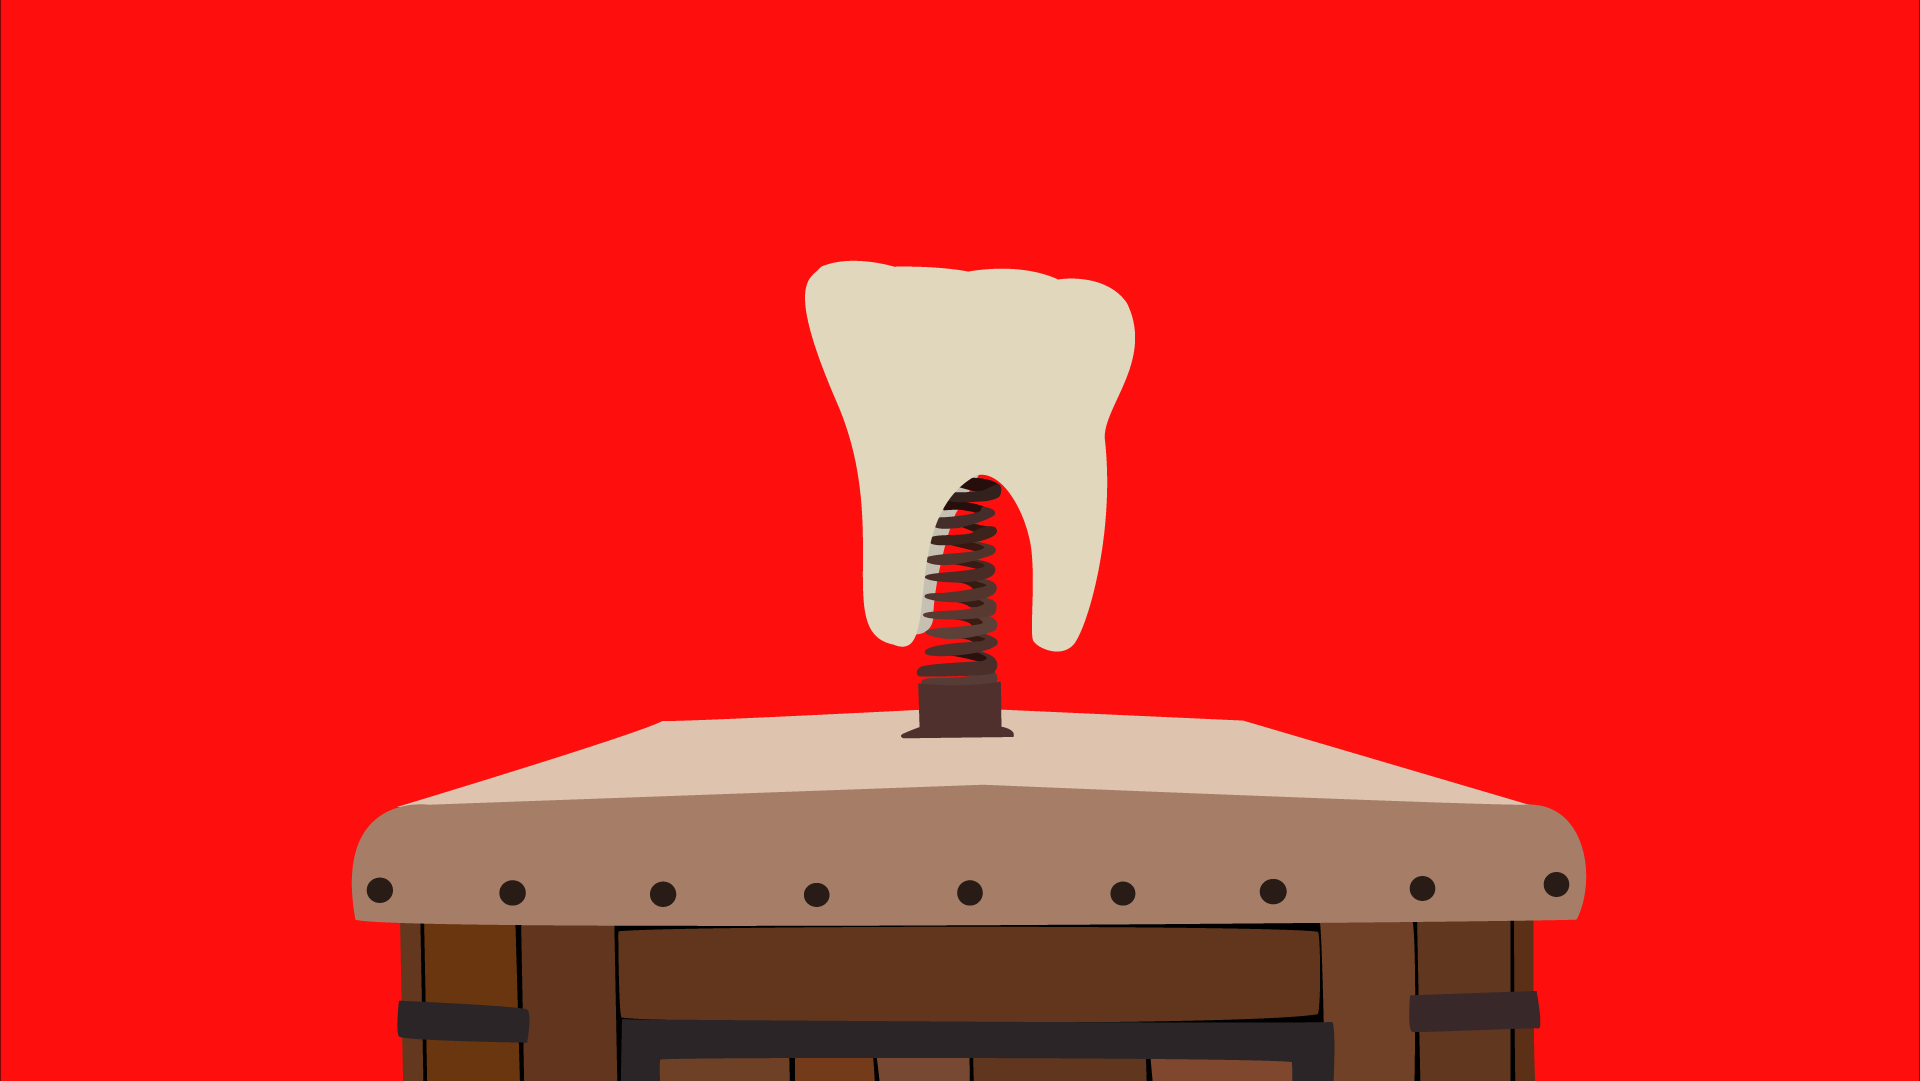 12/07/2014: Tooth, 1920x1081 px